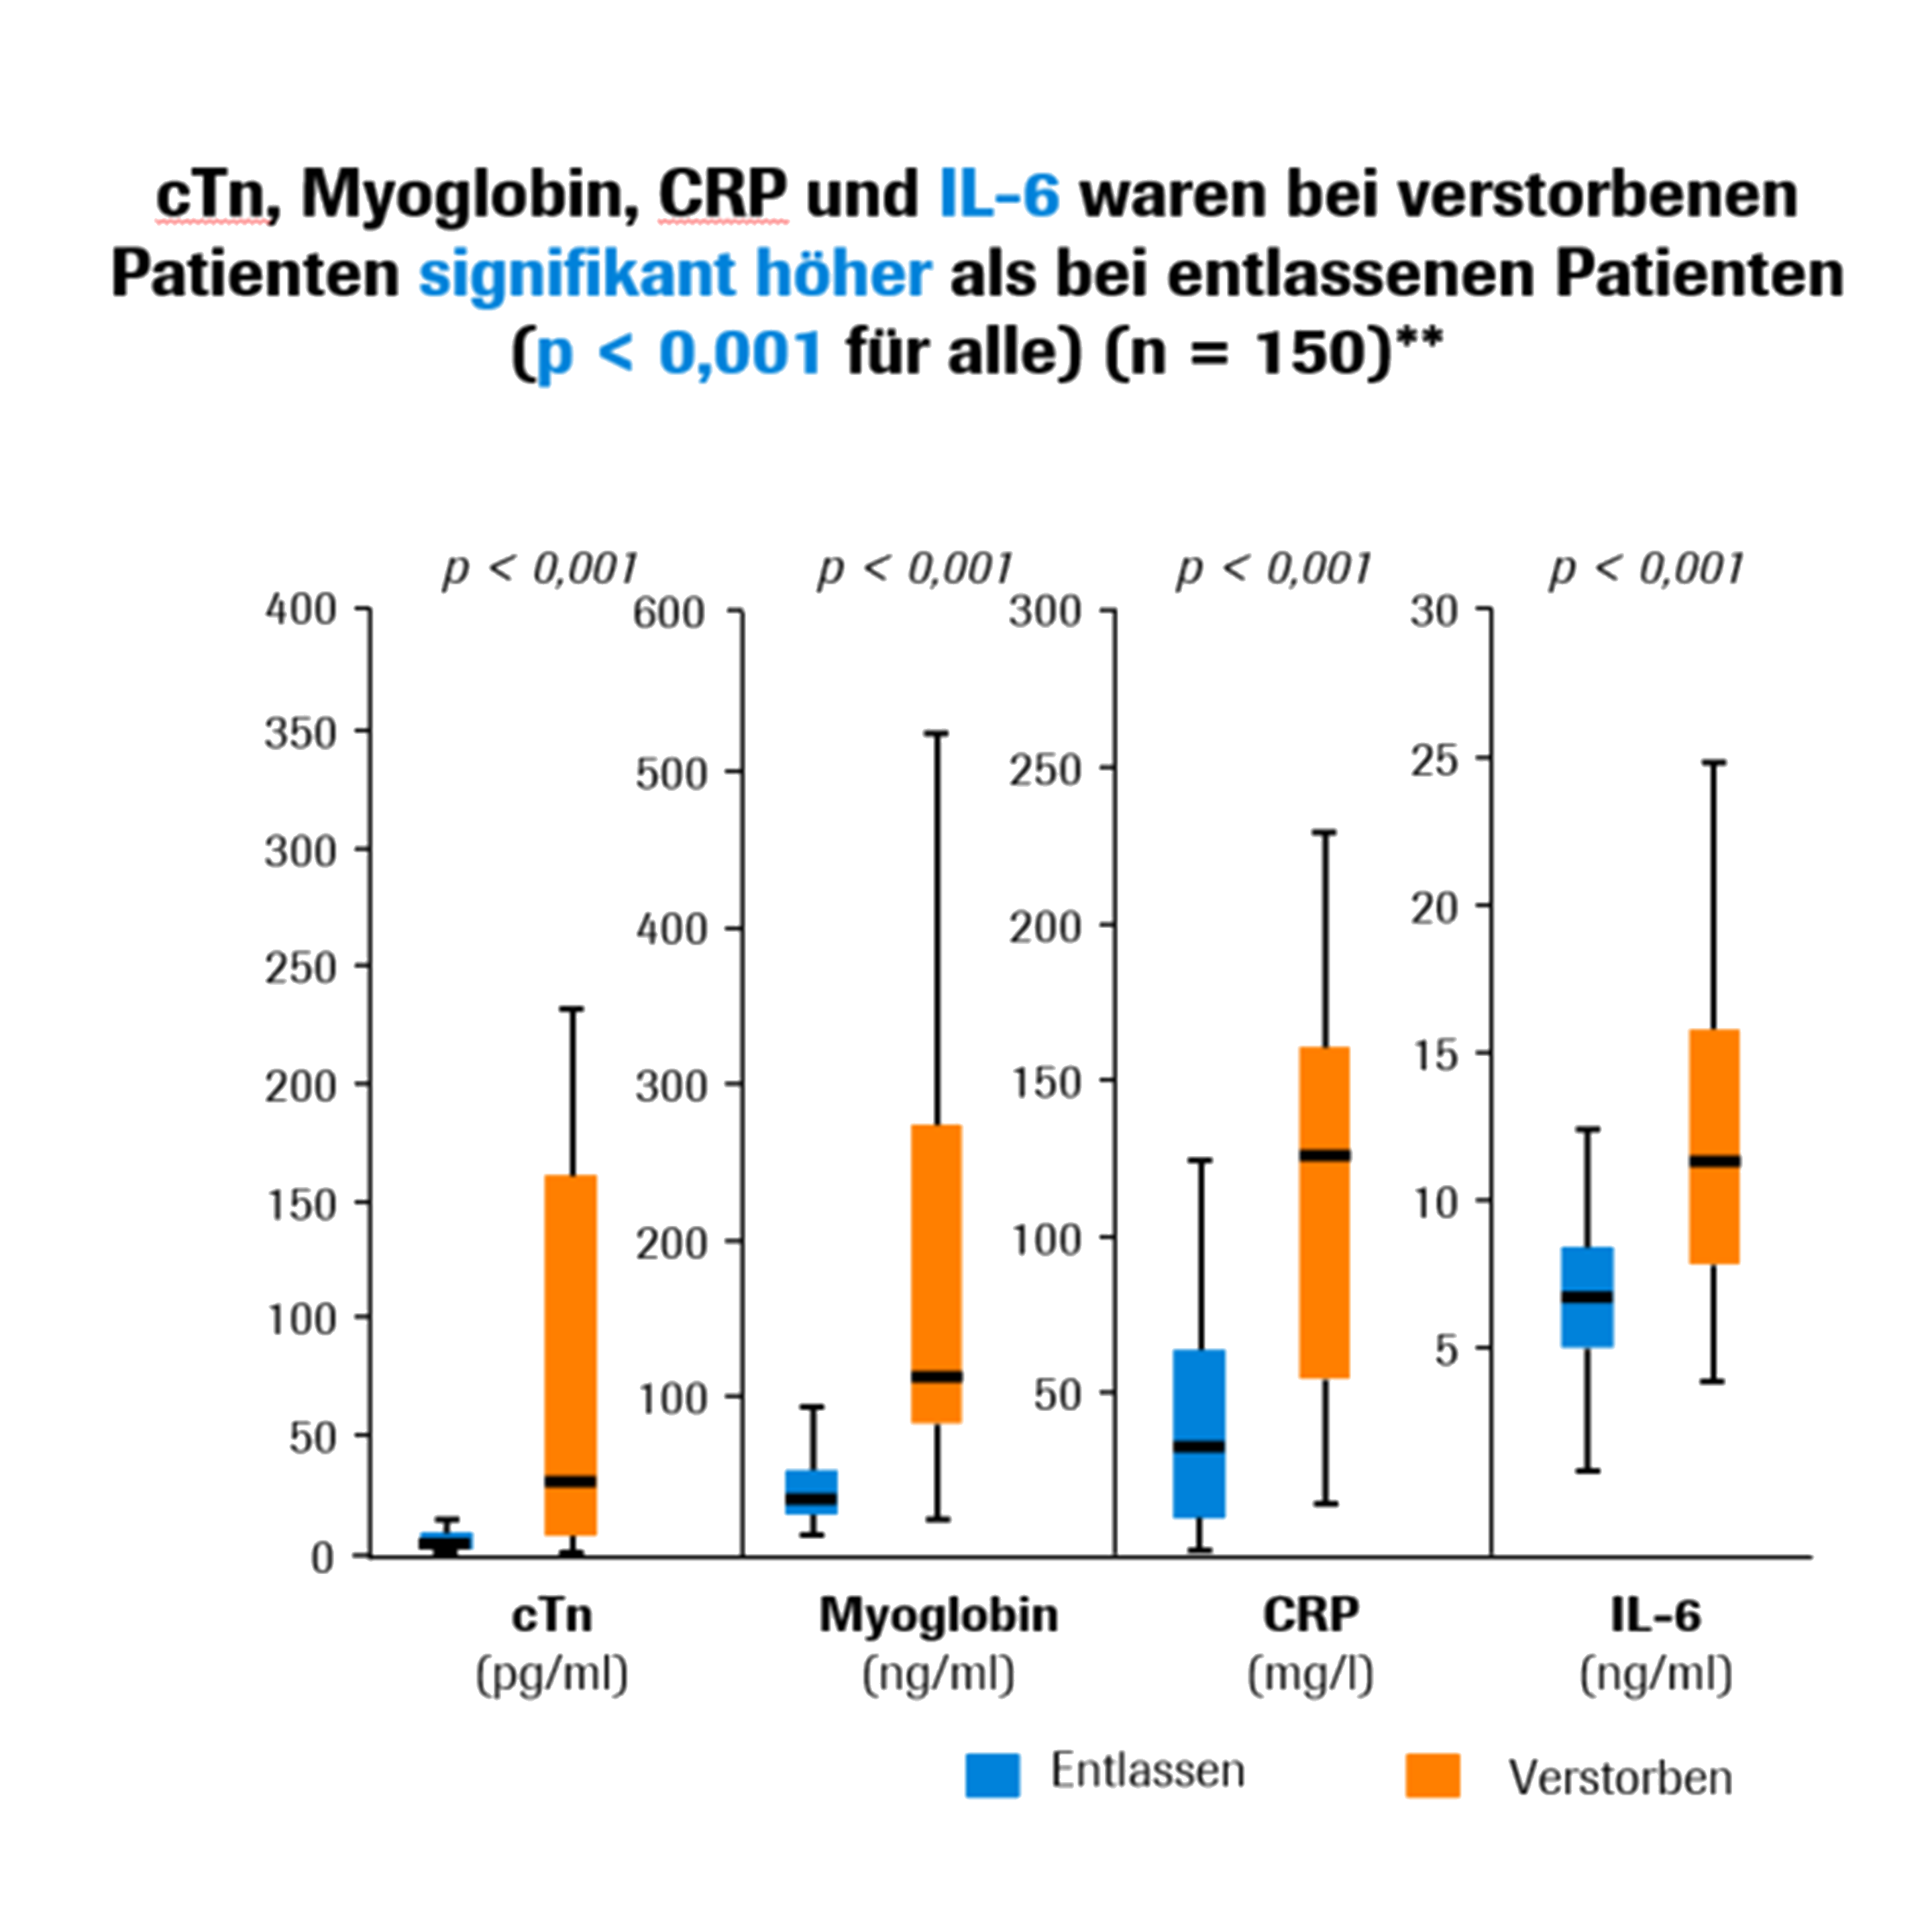 cTn, myoglobin, CRP, and IL-6 were significantly greater in patients that died